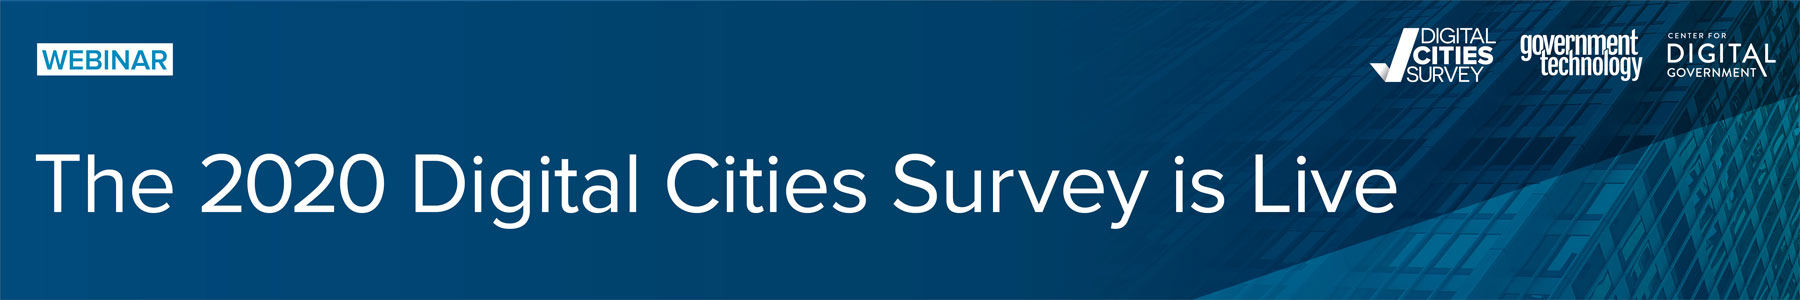 The 2020 Digital Cities Survey is Live